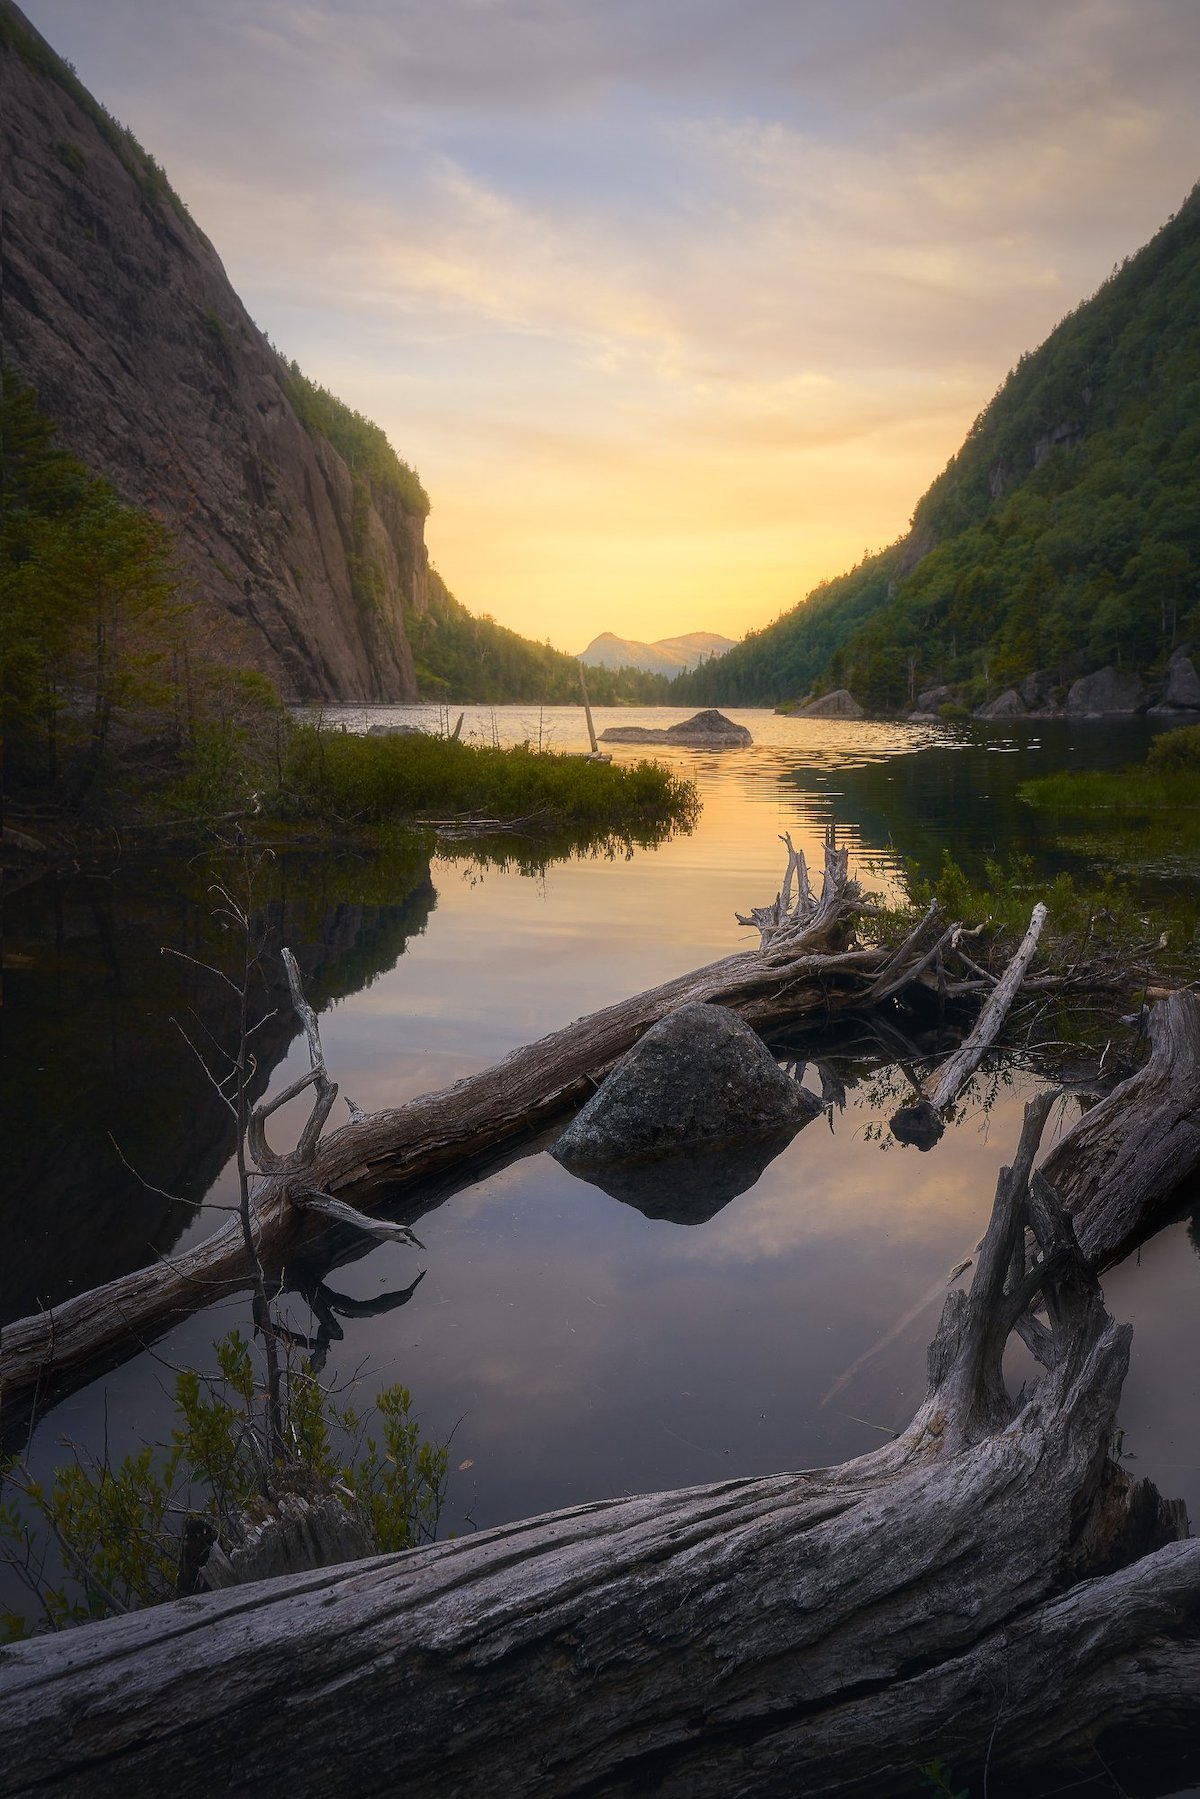 Sunset from Avalanche Lake in Upstate New York